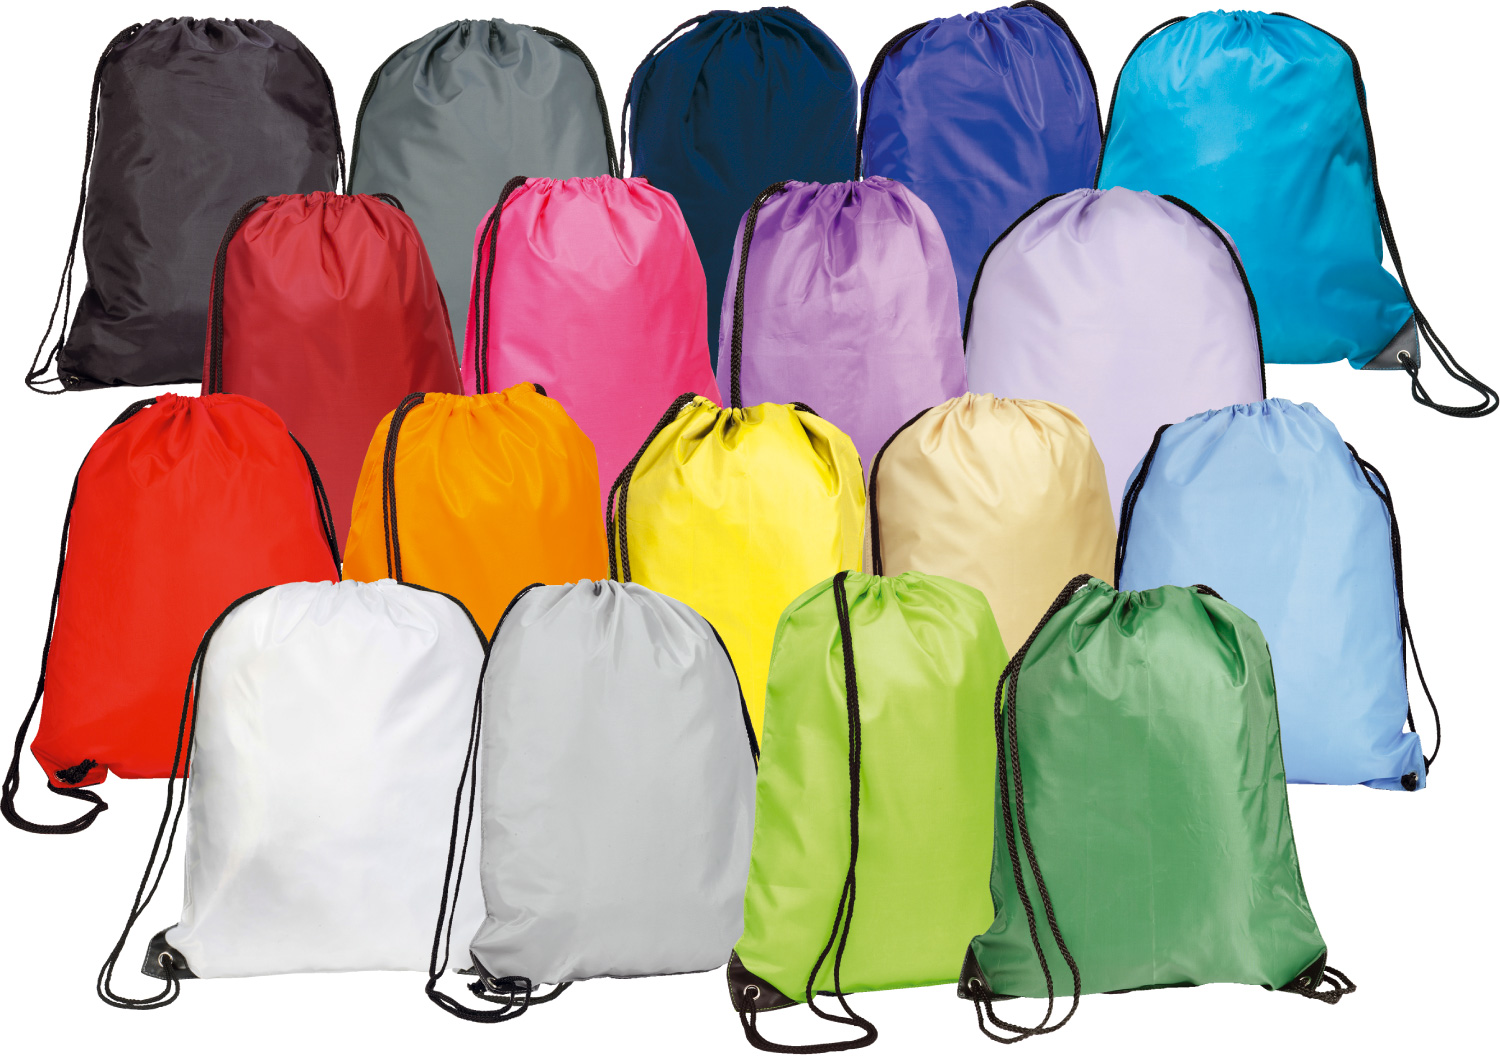 Nylon/Polyester Backpacks